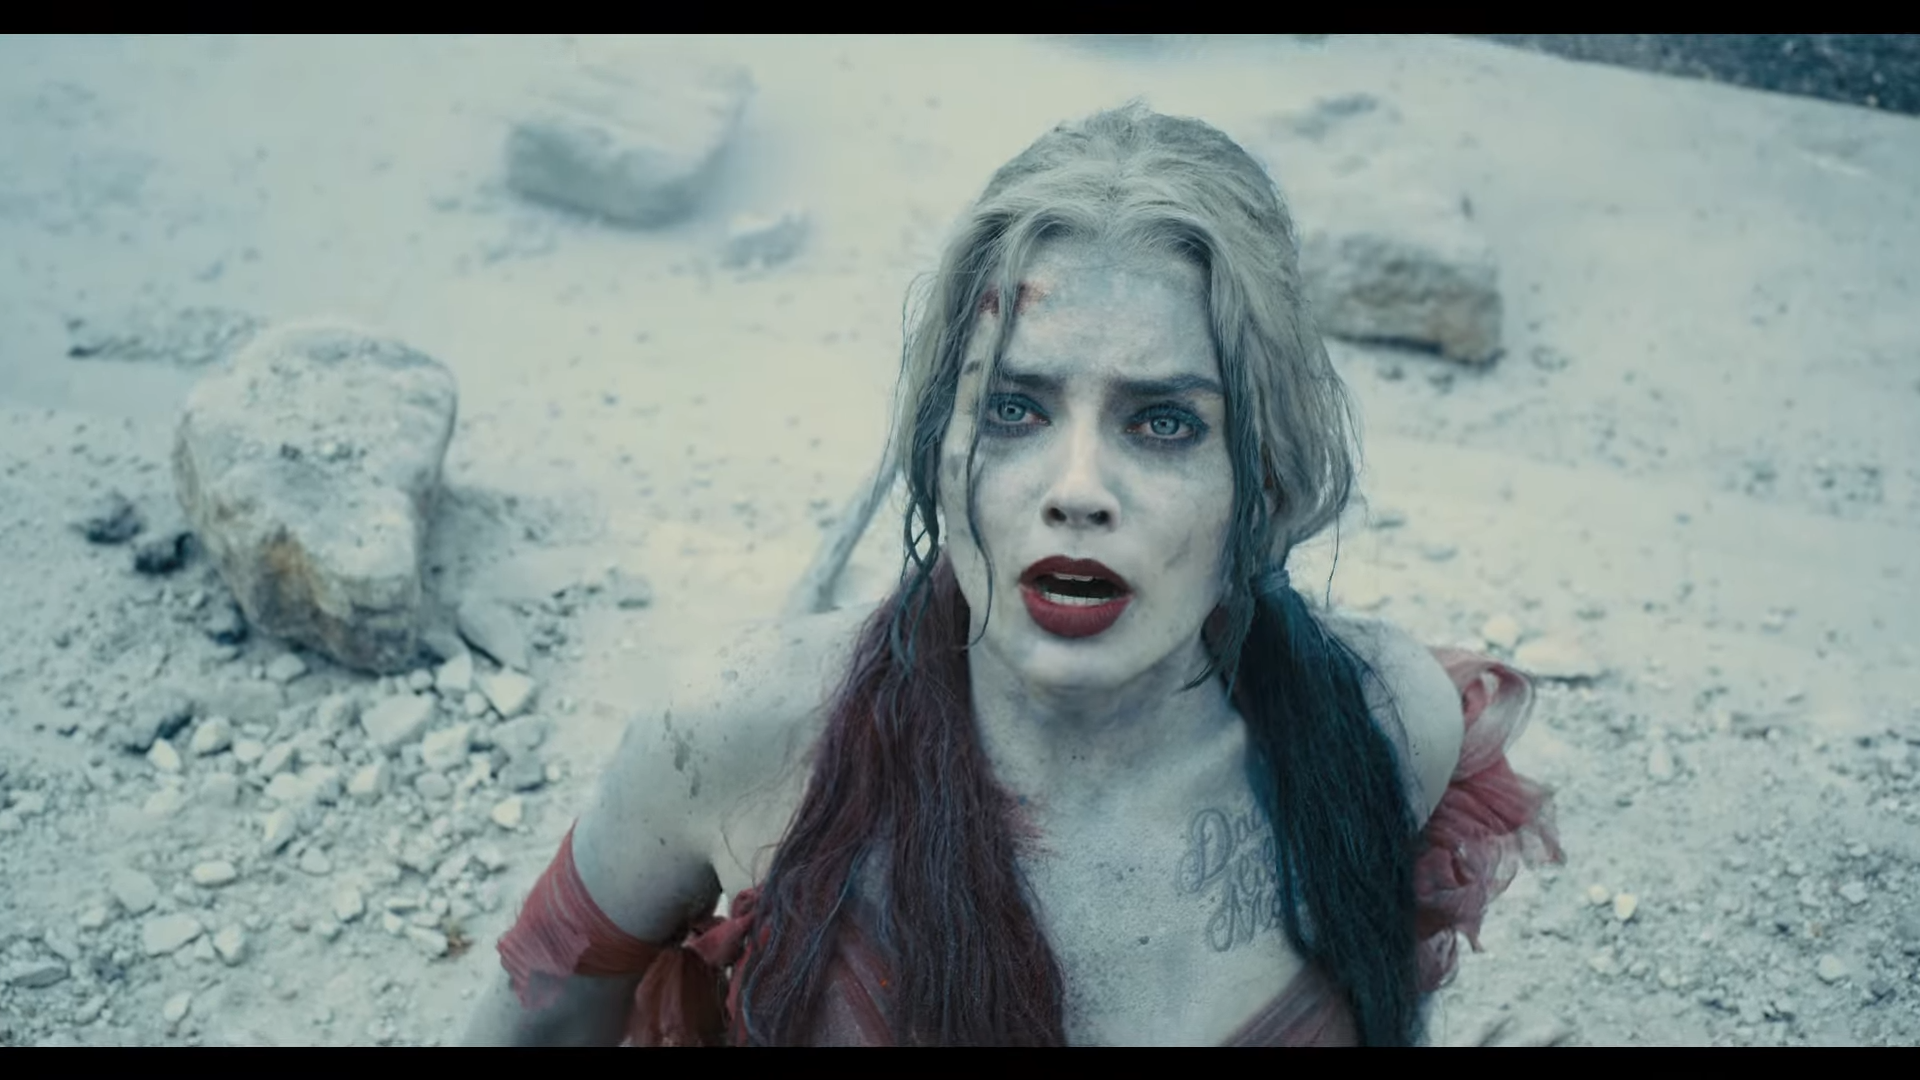 THE-SUICIDE-SQUAD-Rebellion-Trailer-1-54-screenshot-87